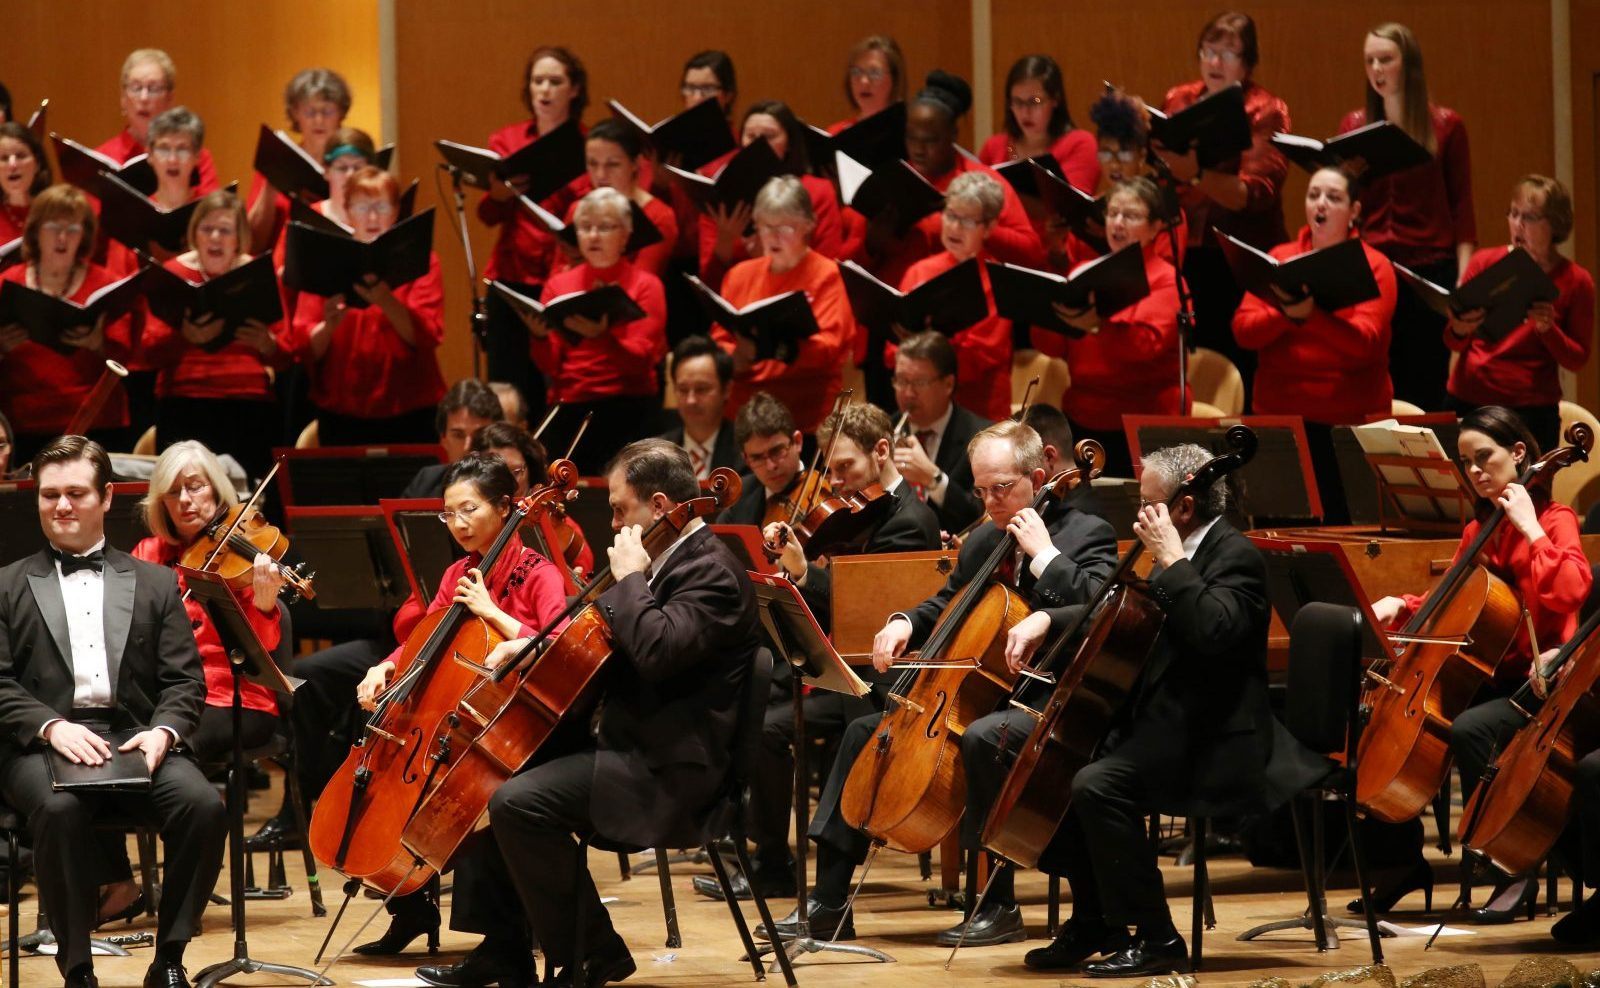 The Buffalo Philharmonic Chorus performing with the BPO. (Sharon Cantillon/Buffalo News file photo)